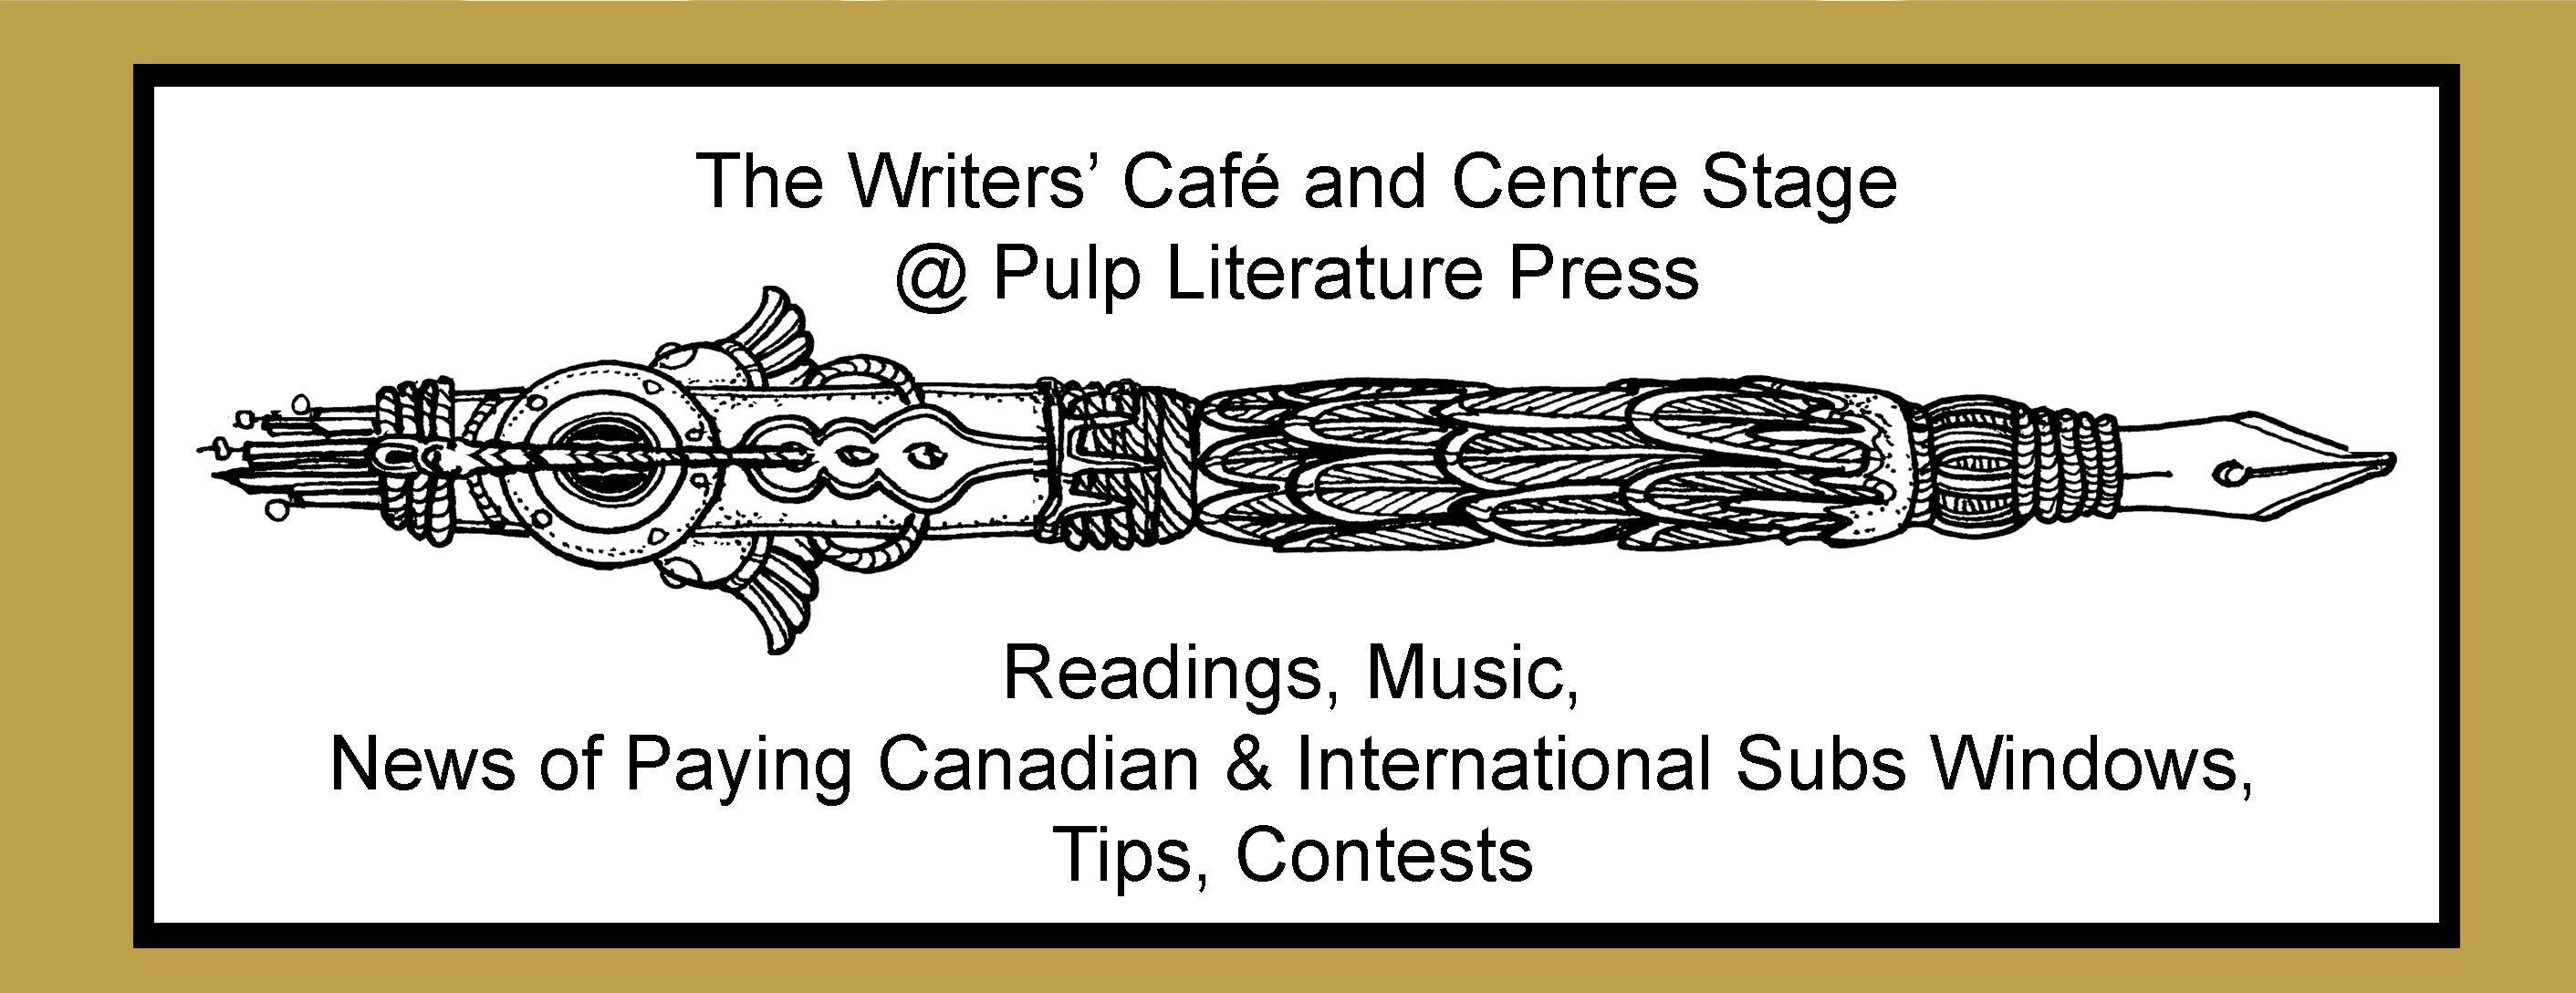 Communication on this topic: How to Critique in Fiction Writing Workshops, how-to-critique-in-fiction-writing-workshops/